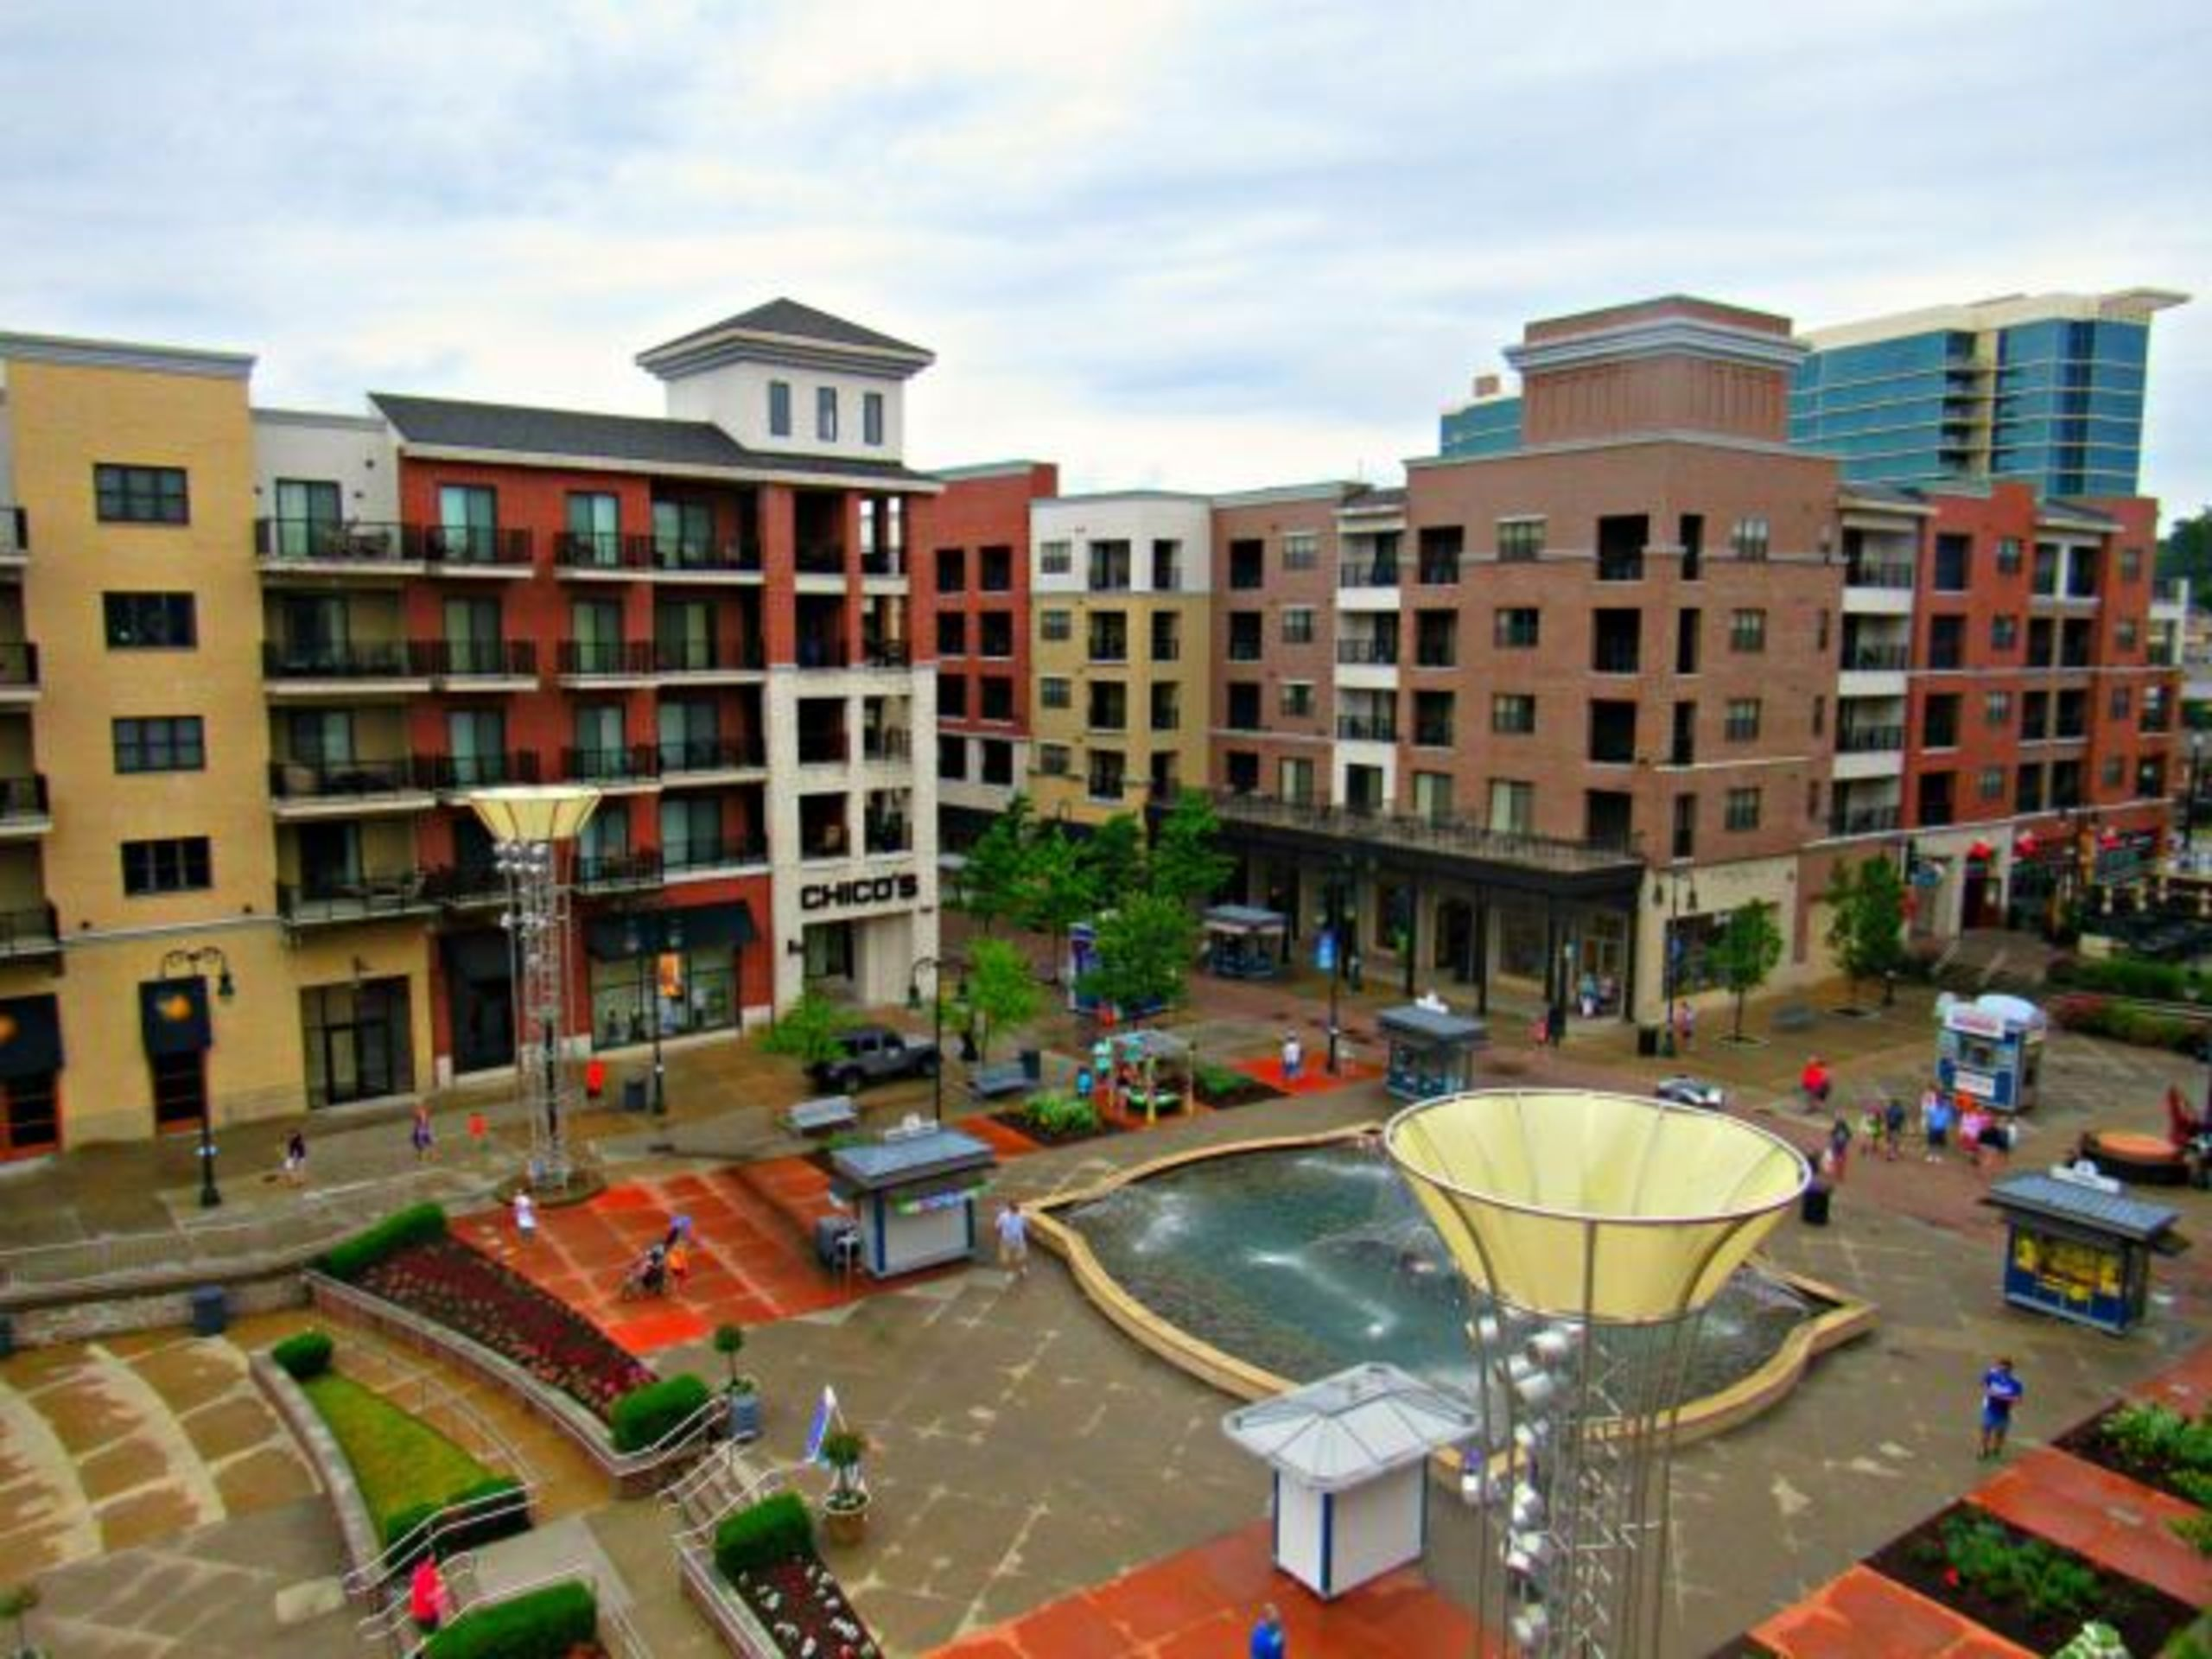 Condos near shopping, food and entertainment